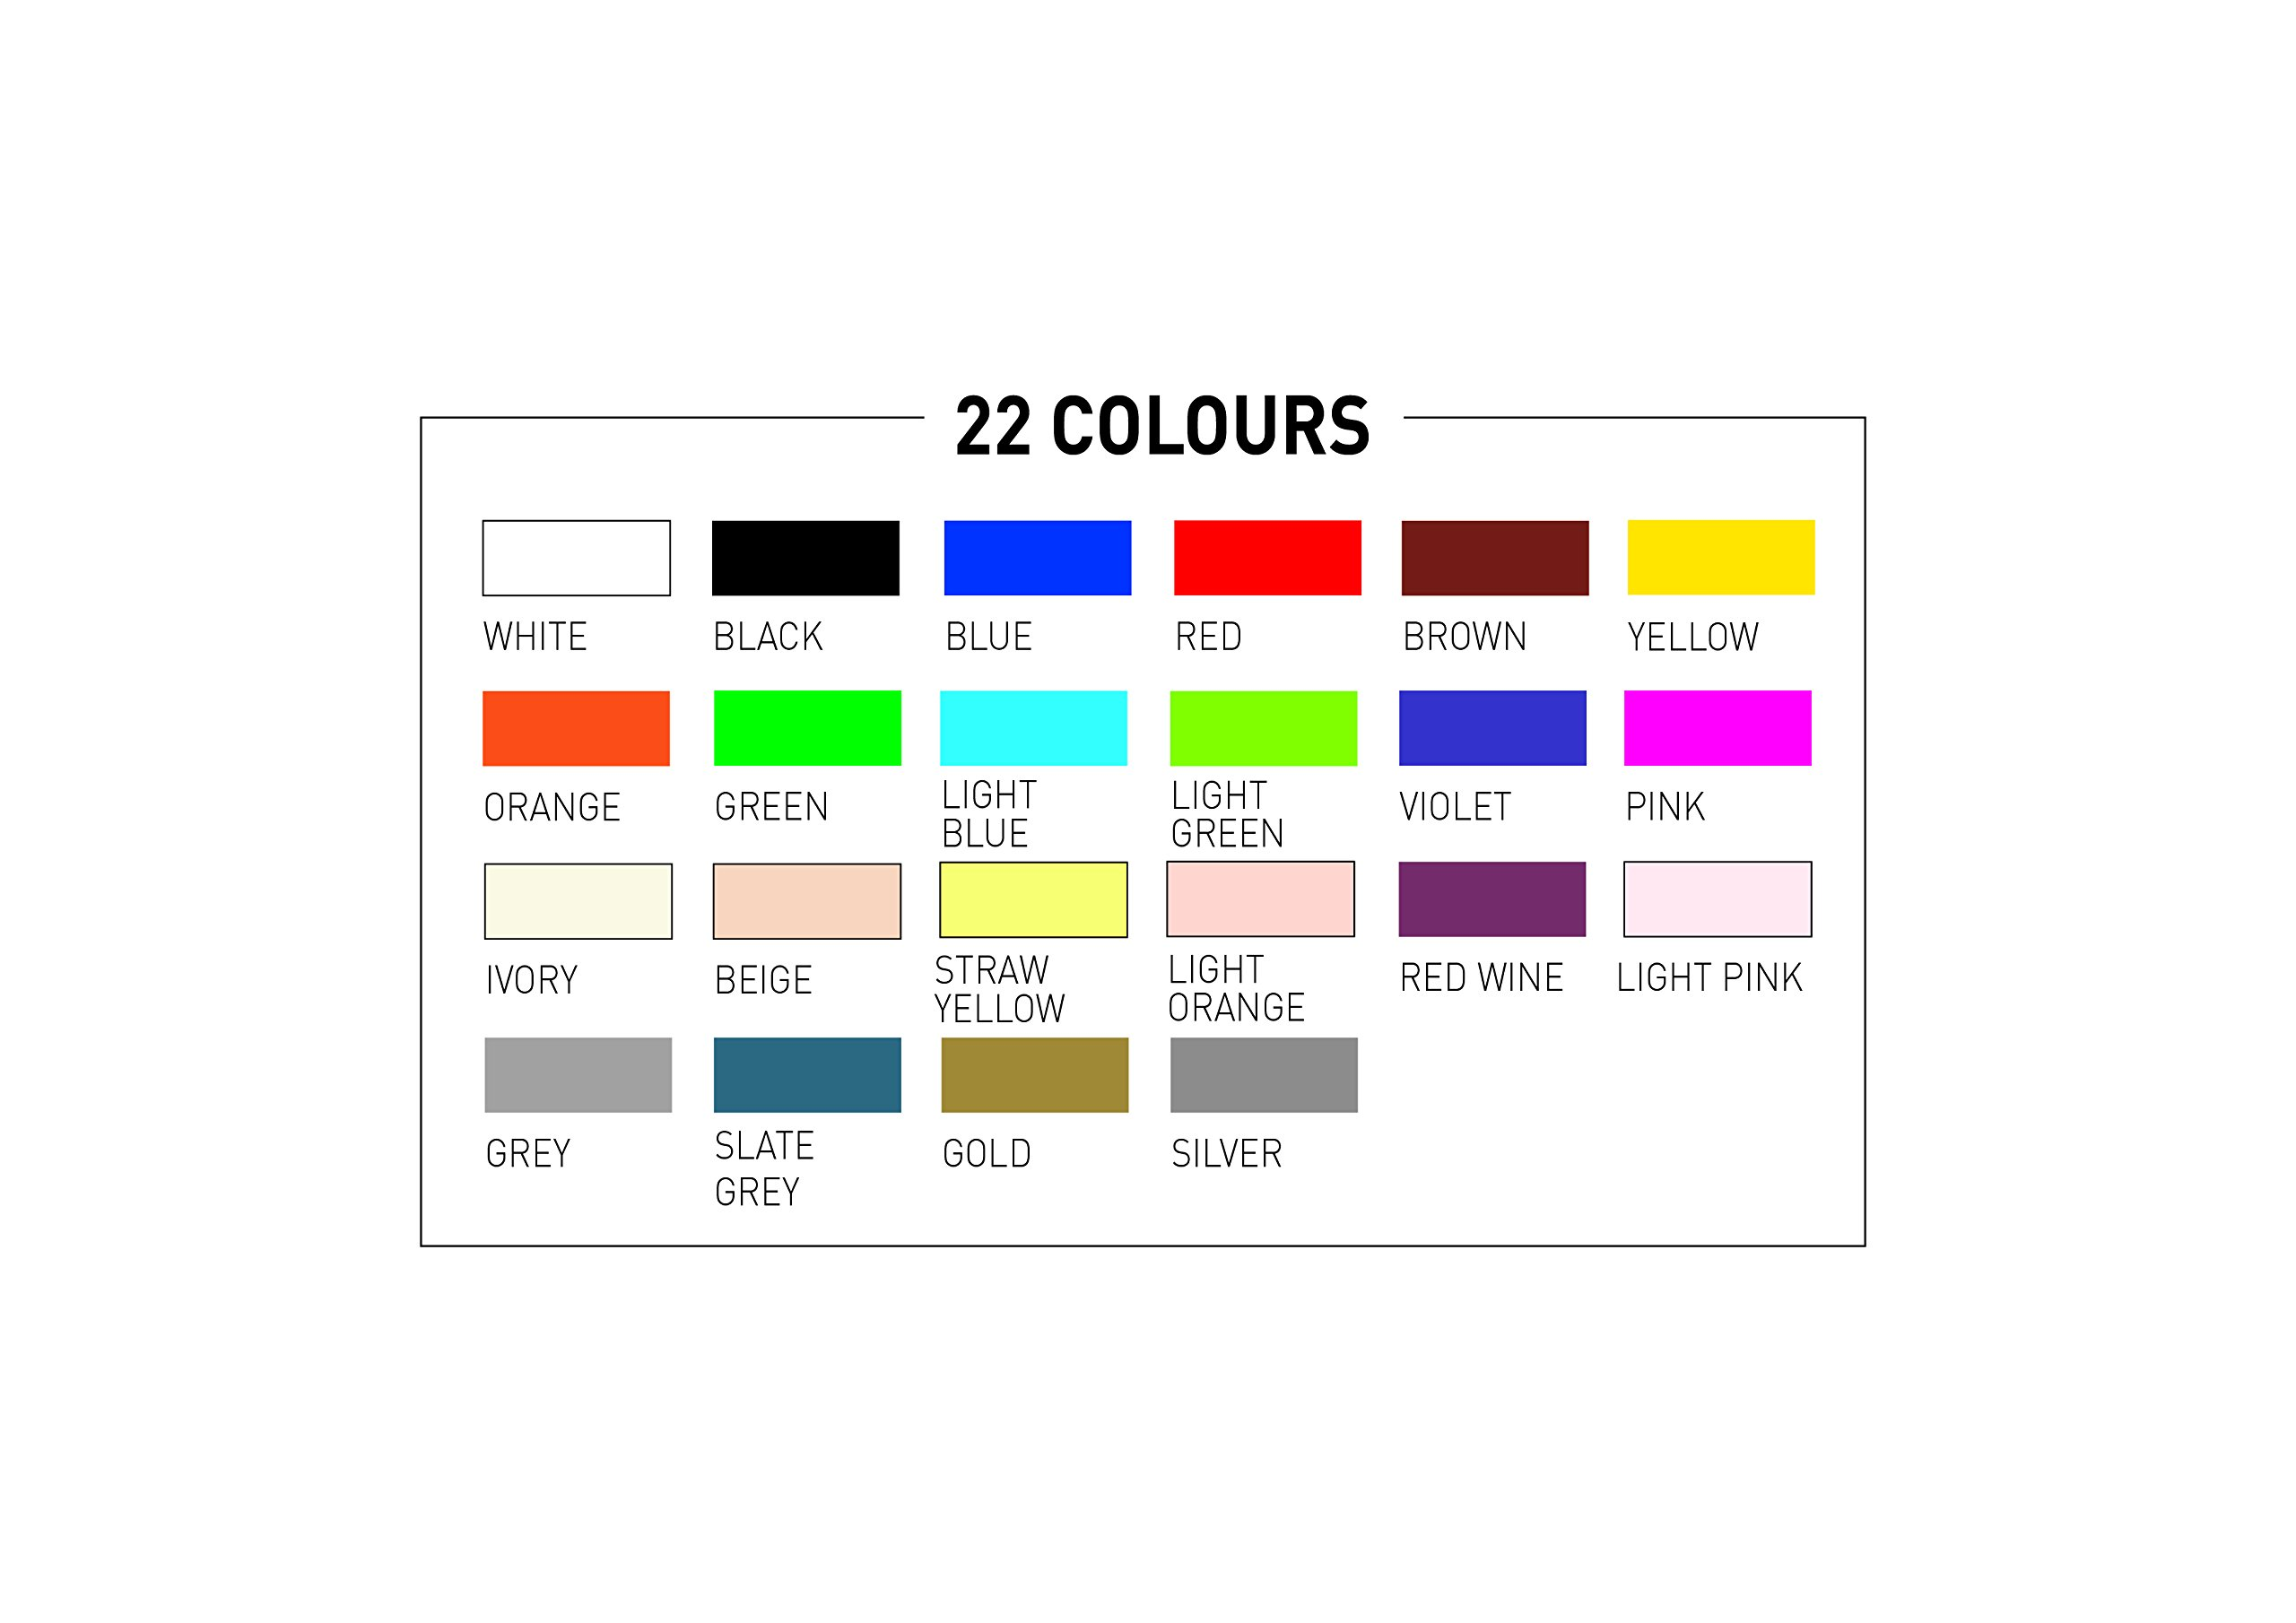 POSCA 153544865 1 mm Fine Tip Waterbased Paint Marker - Assorted Colours (Pack of 22) by posca (Image #3)